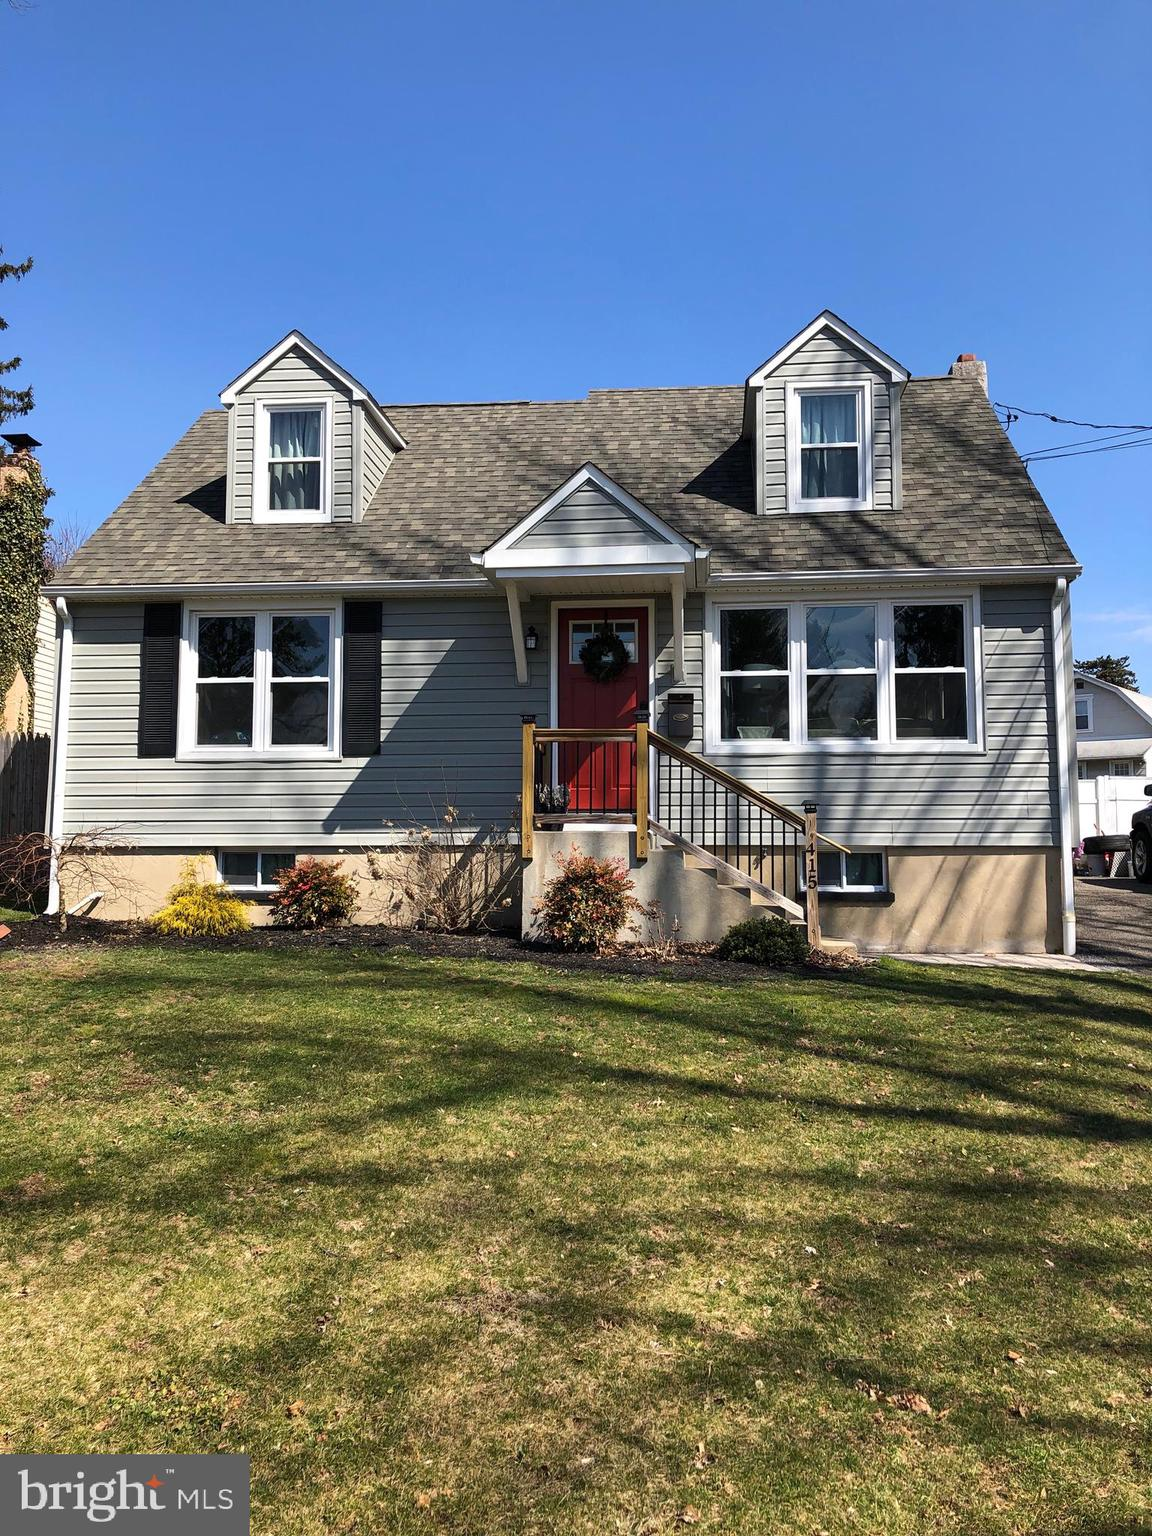 415 VINCENT ROAD, WILLOW GROVE, PA 19090